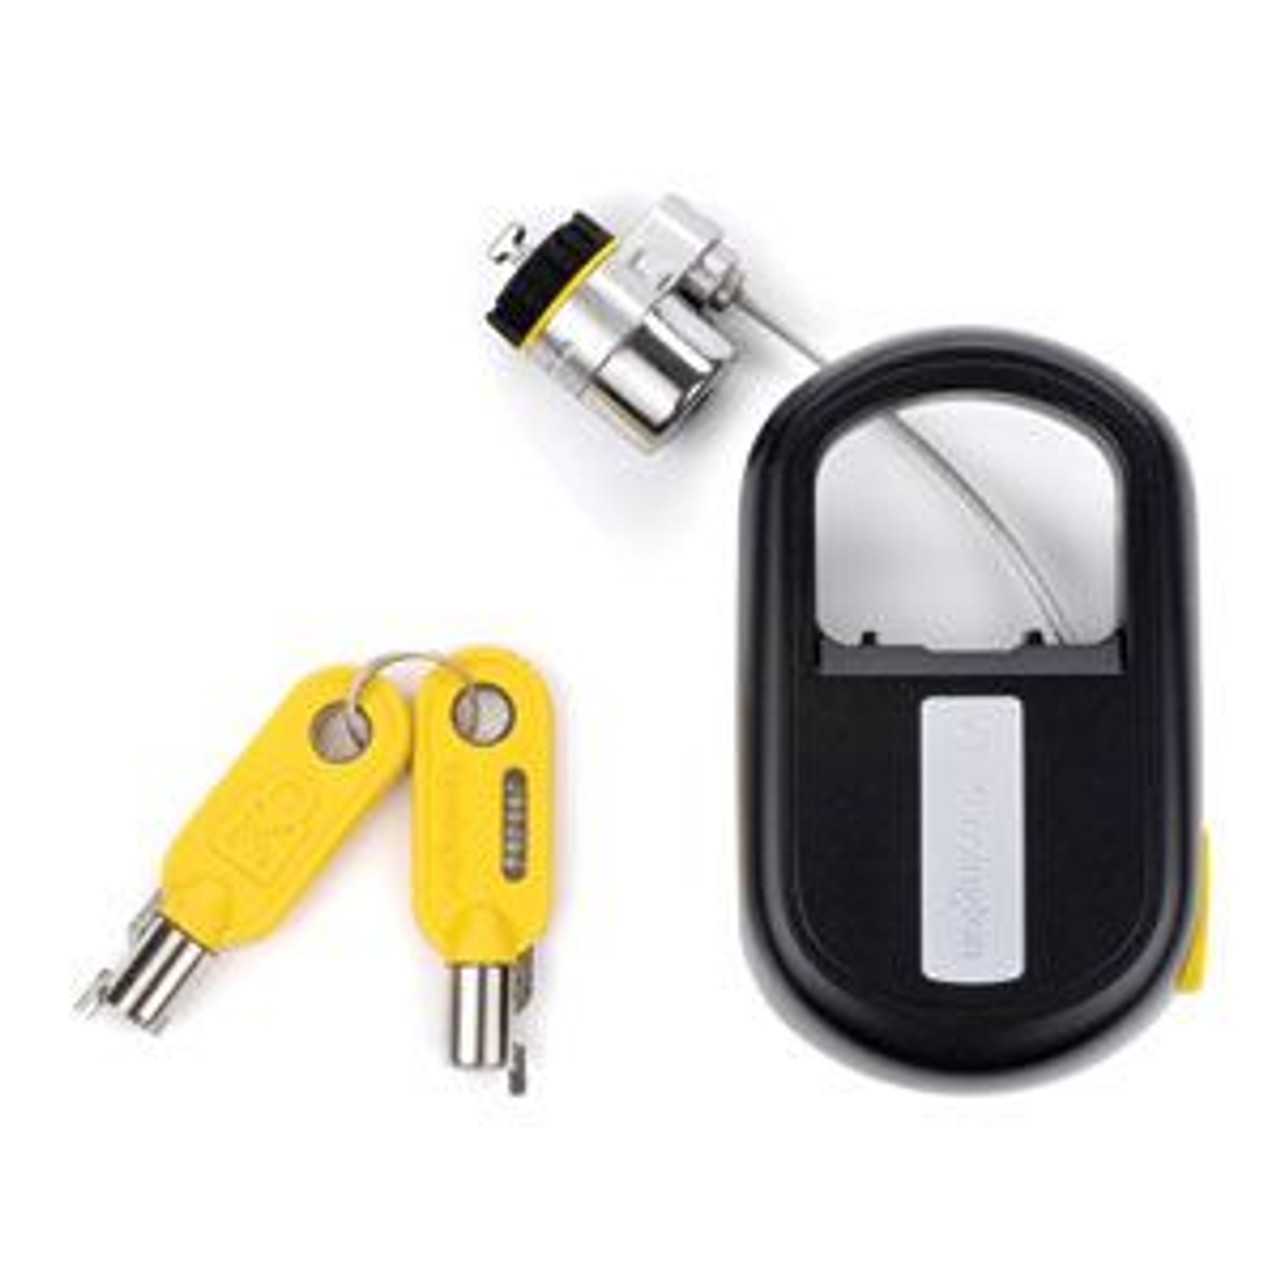 Image for Kensington MicroSaver Keyed Retractable Notebook Lock (64538) CX Computer Superstore